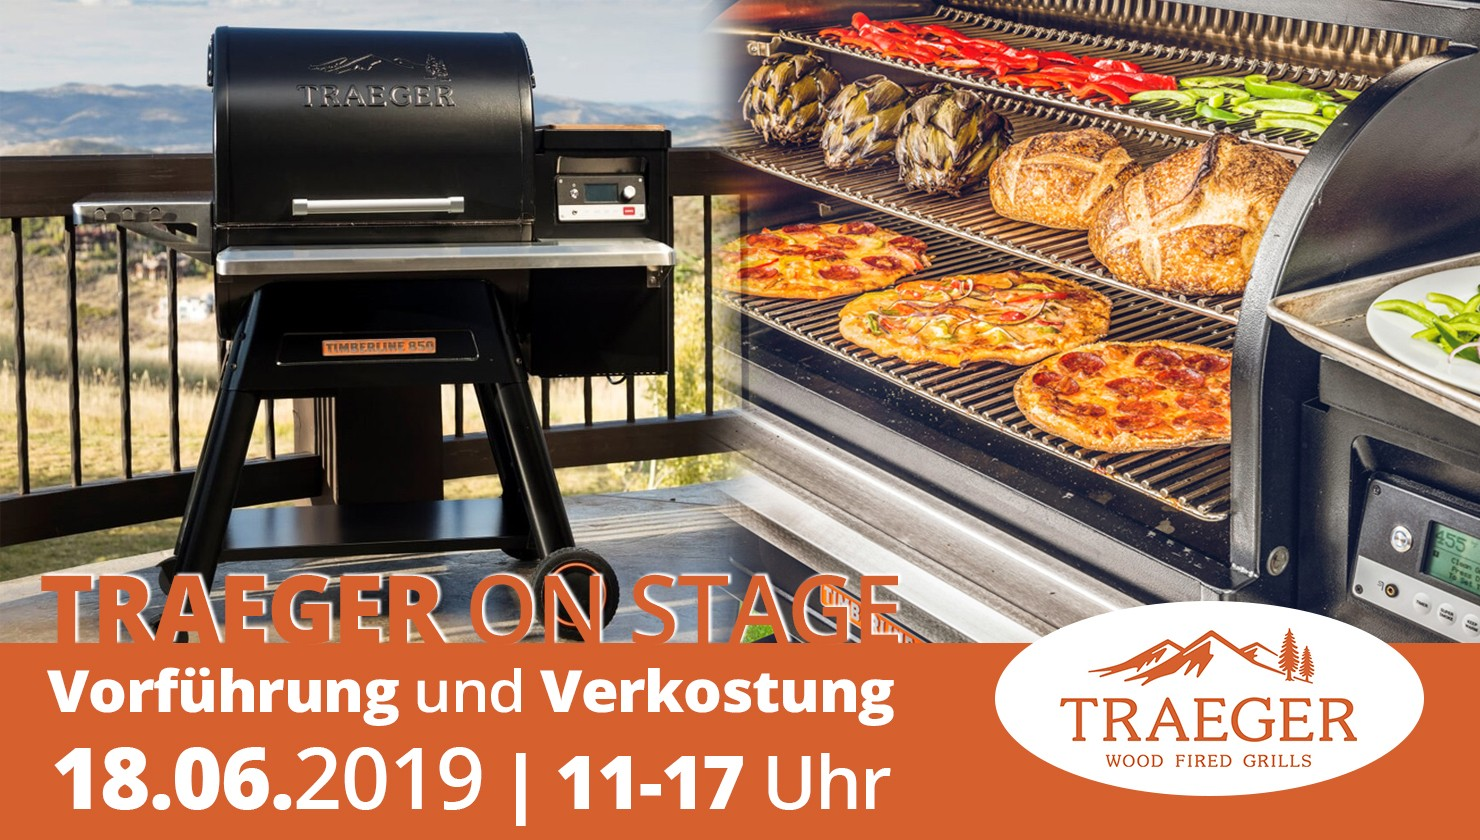 Traeger on Stage